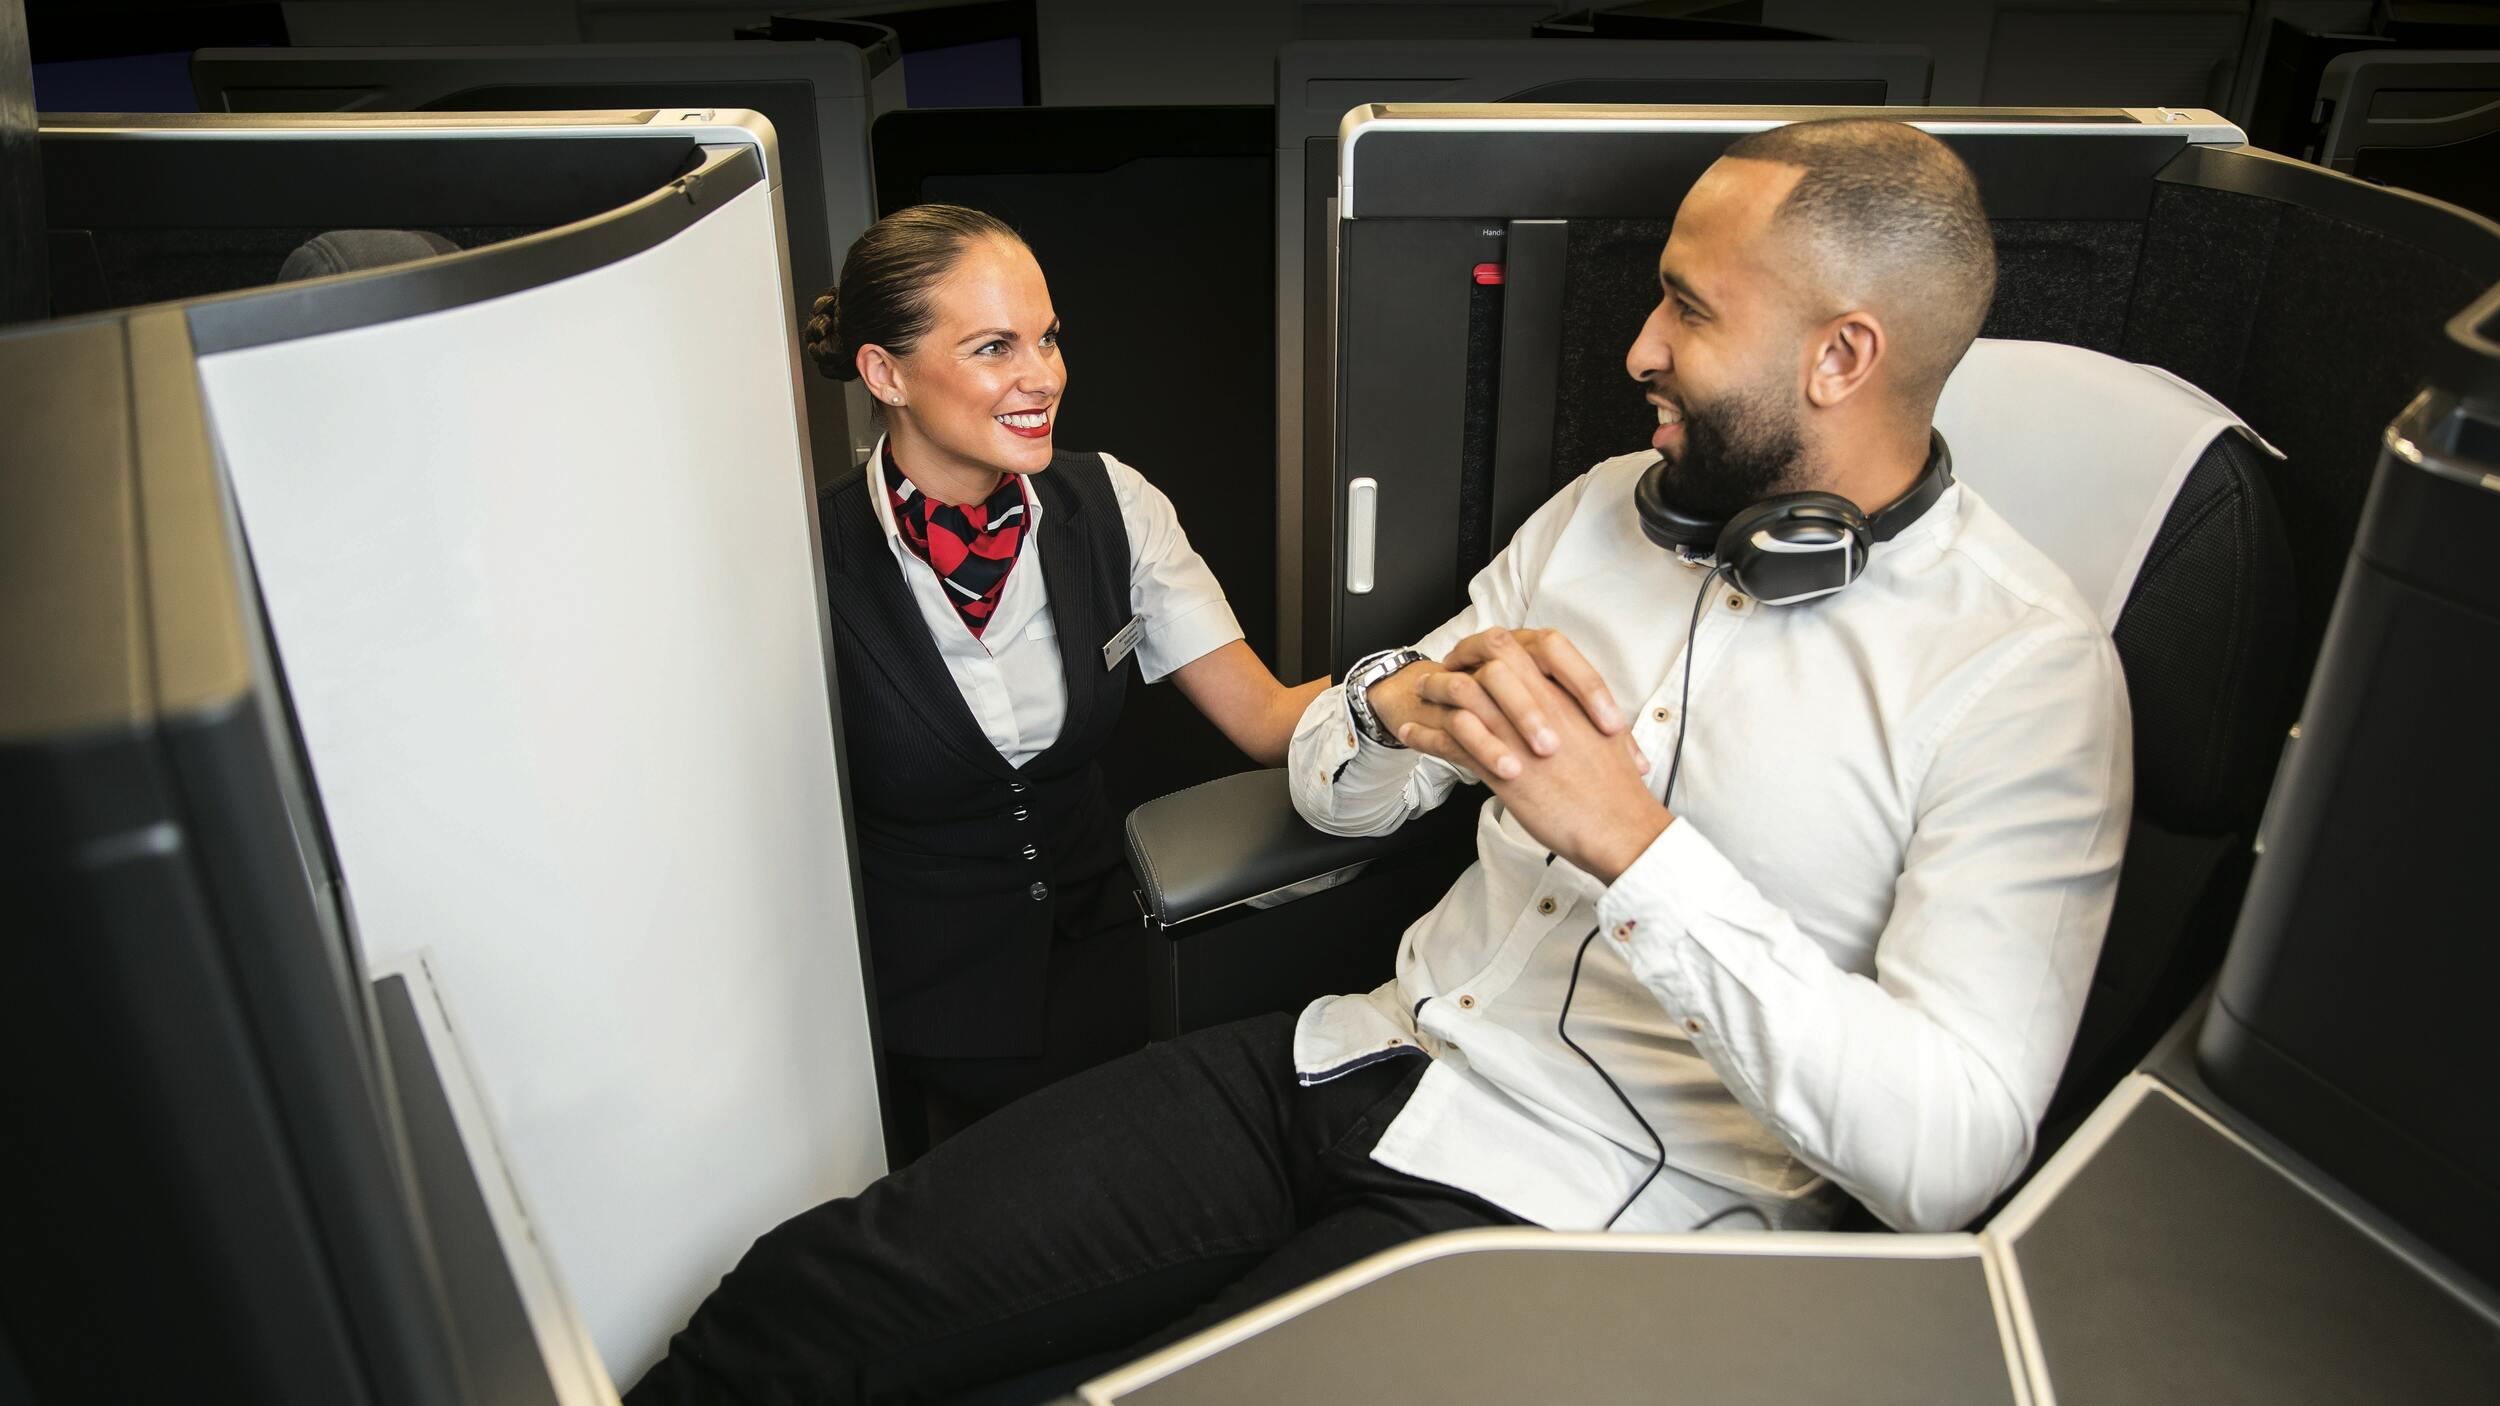 Club Suite will be used for long-haul flights from October 1.